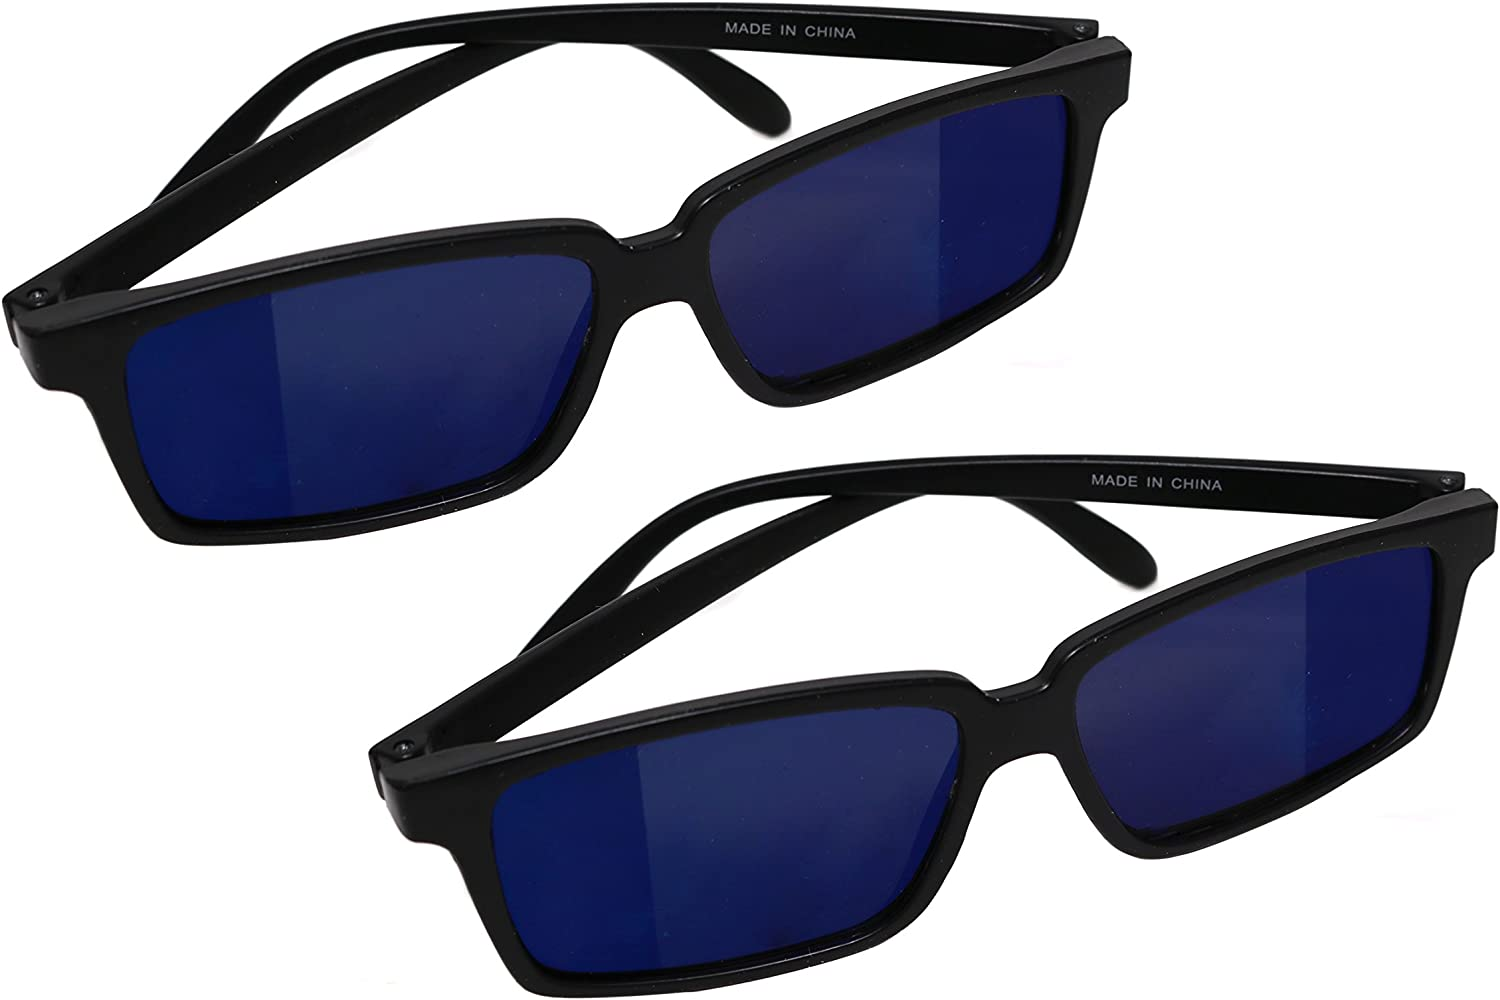 Smart Novelty Spy Glasses with Rearview Mirror Vision to See Behind You - 2 Pack